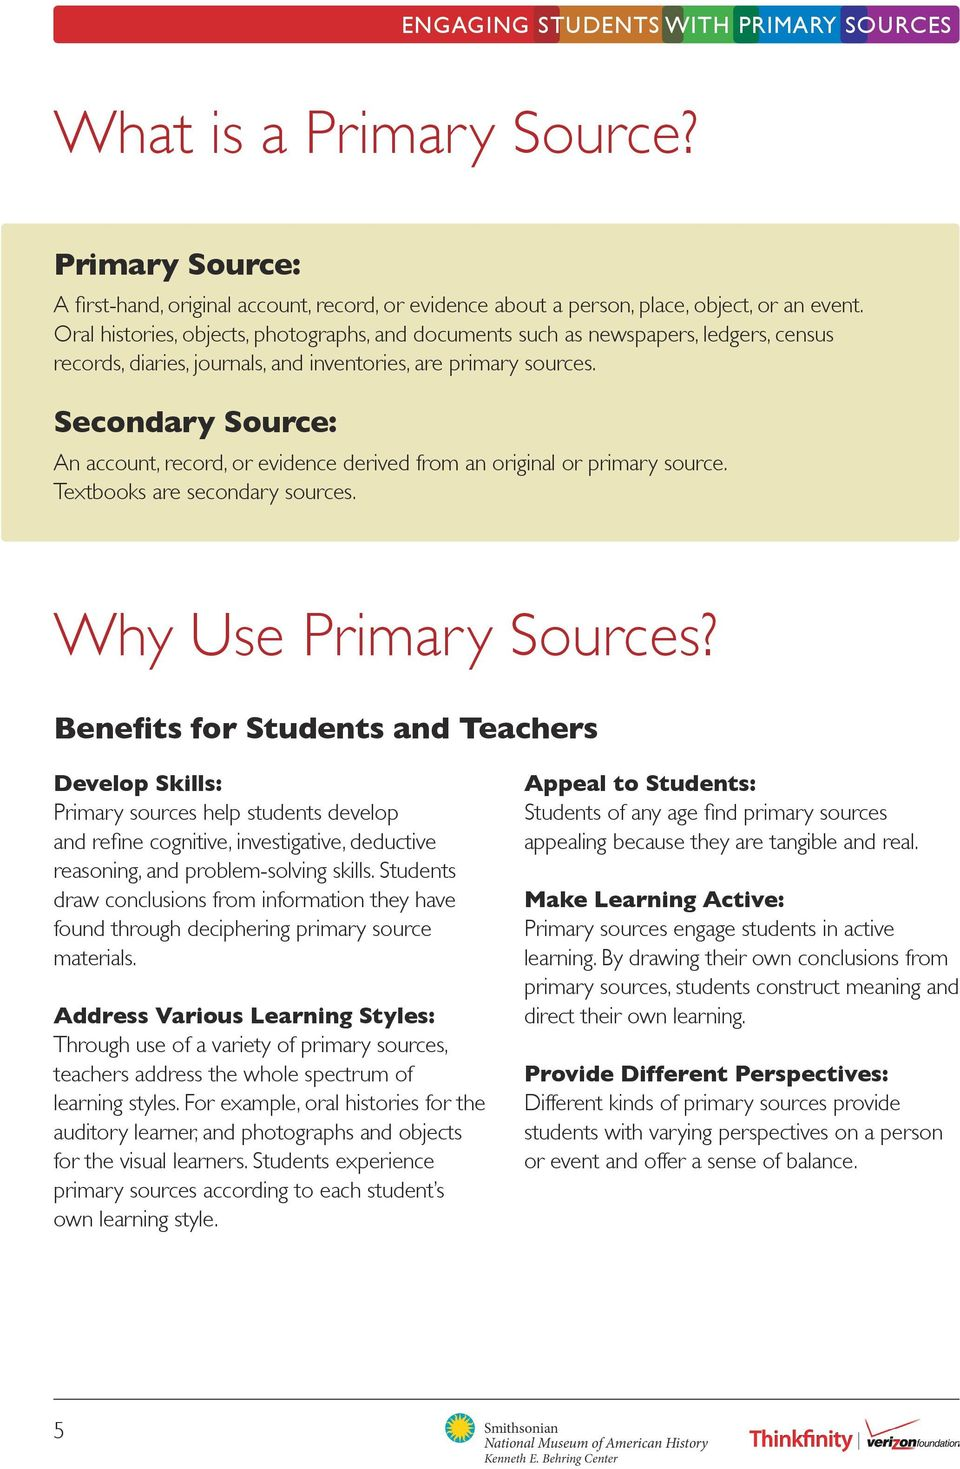 Secondary Source: An account, record, or evidence derived from an original or primary source. Textbooks are secondary sources. Why Use Primary Sources?